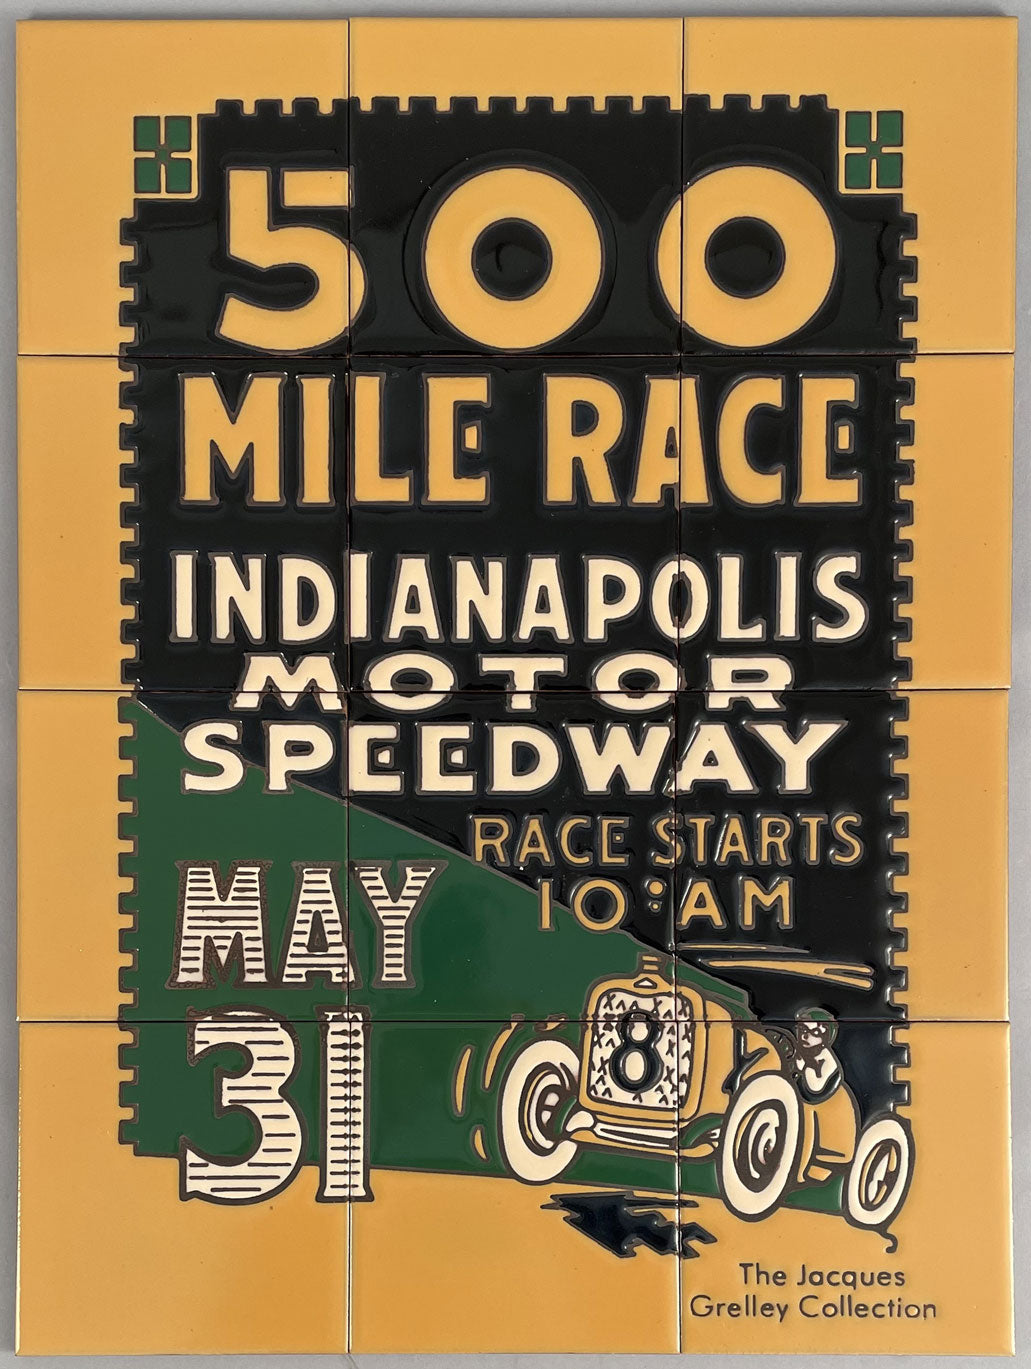 500 Mile Race Indianapolis Motor Speedway limited edition tiles